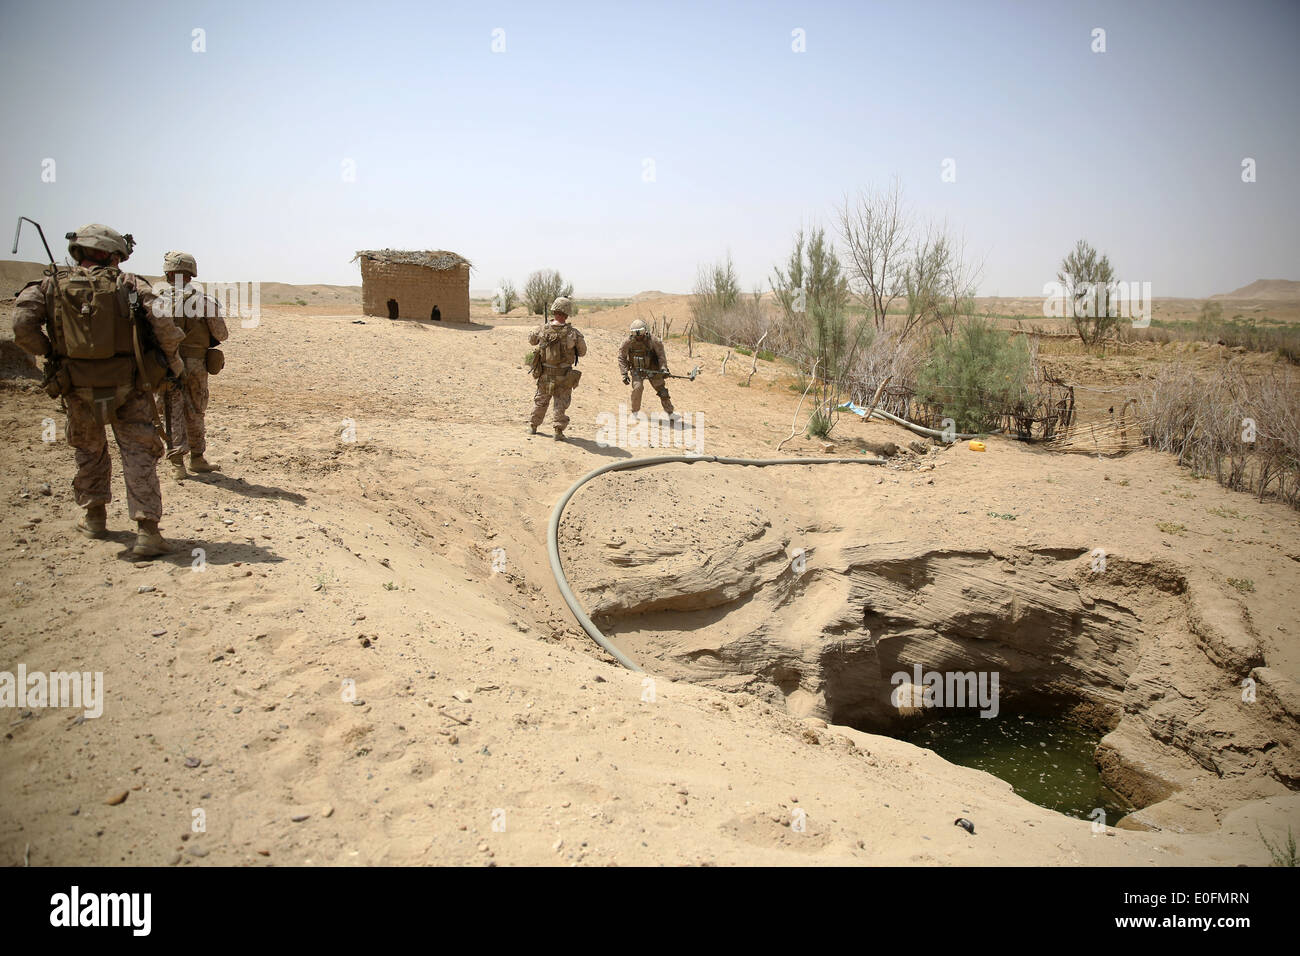 US Marines with the Bravo Company assault force speaks patrol on the outskirts of a village during a counter insurgency Stock Photo